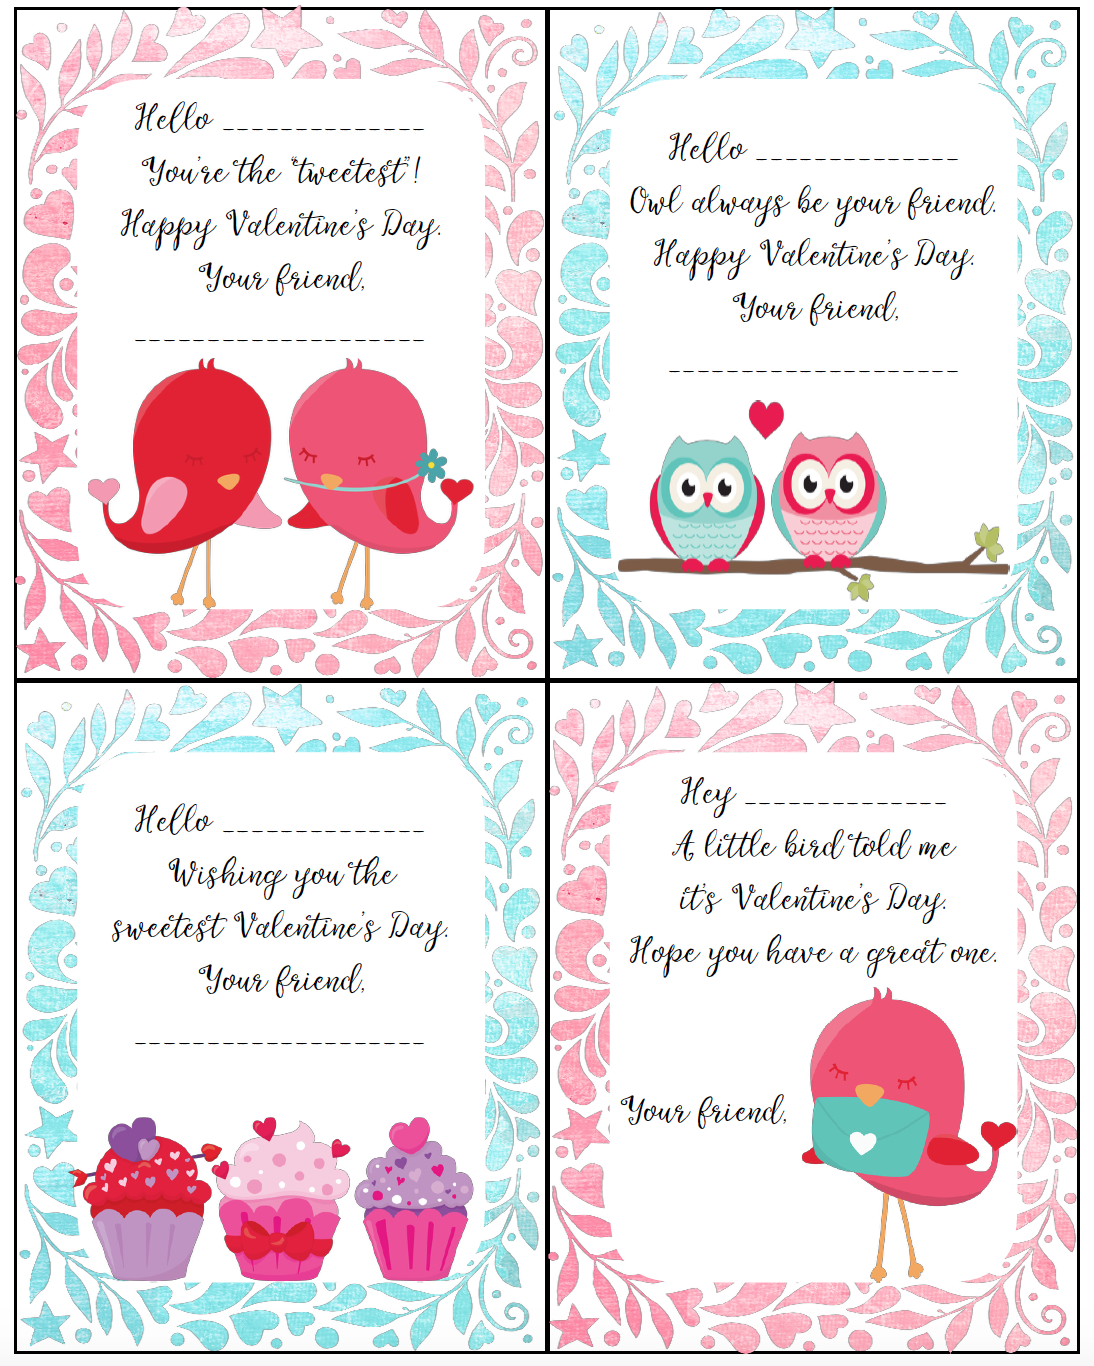 Free Printable Valentine's Day Cards For Kids - Free Printable Childrens Valentines Day Cards